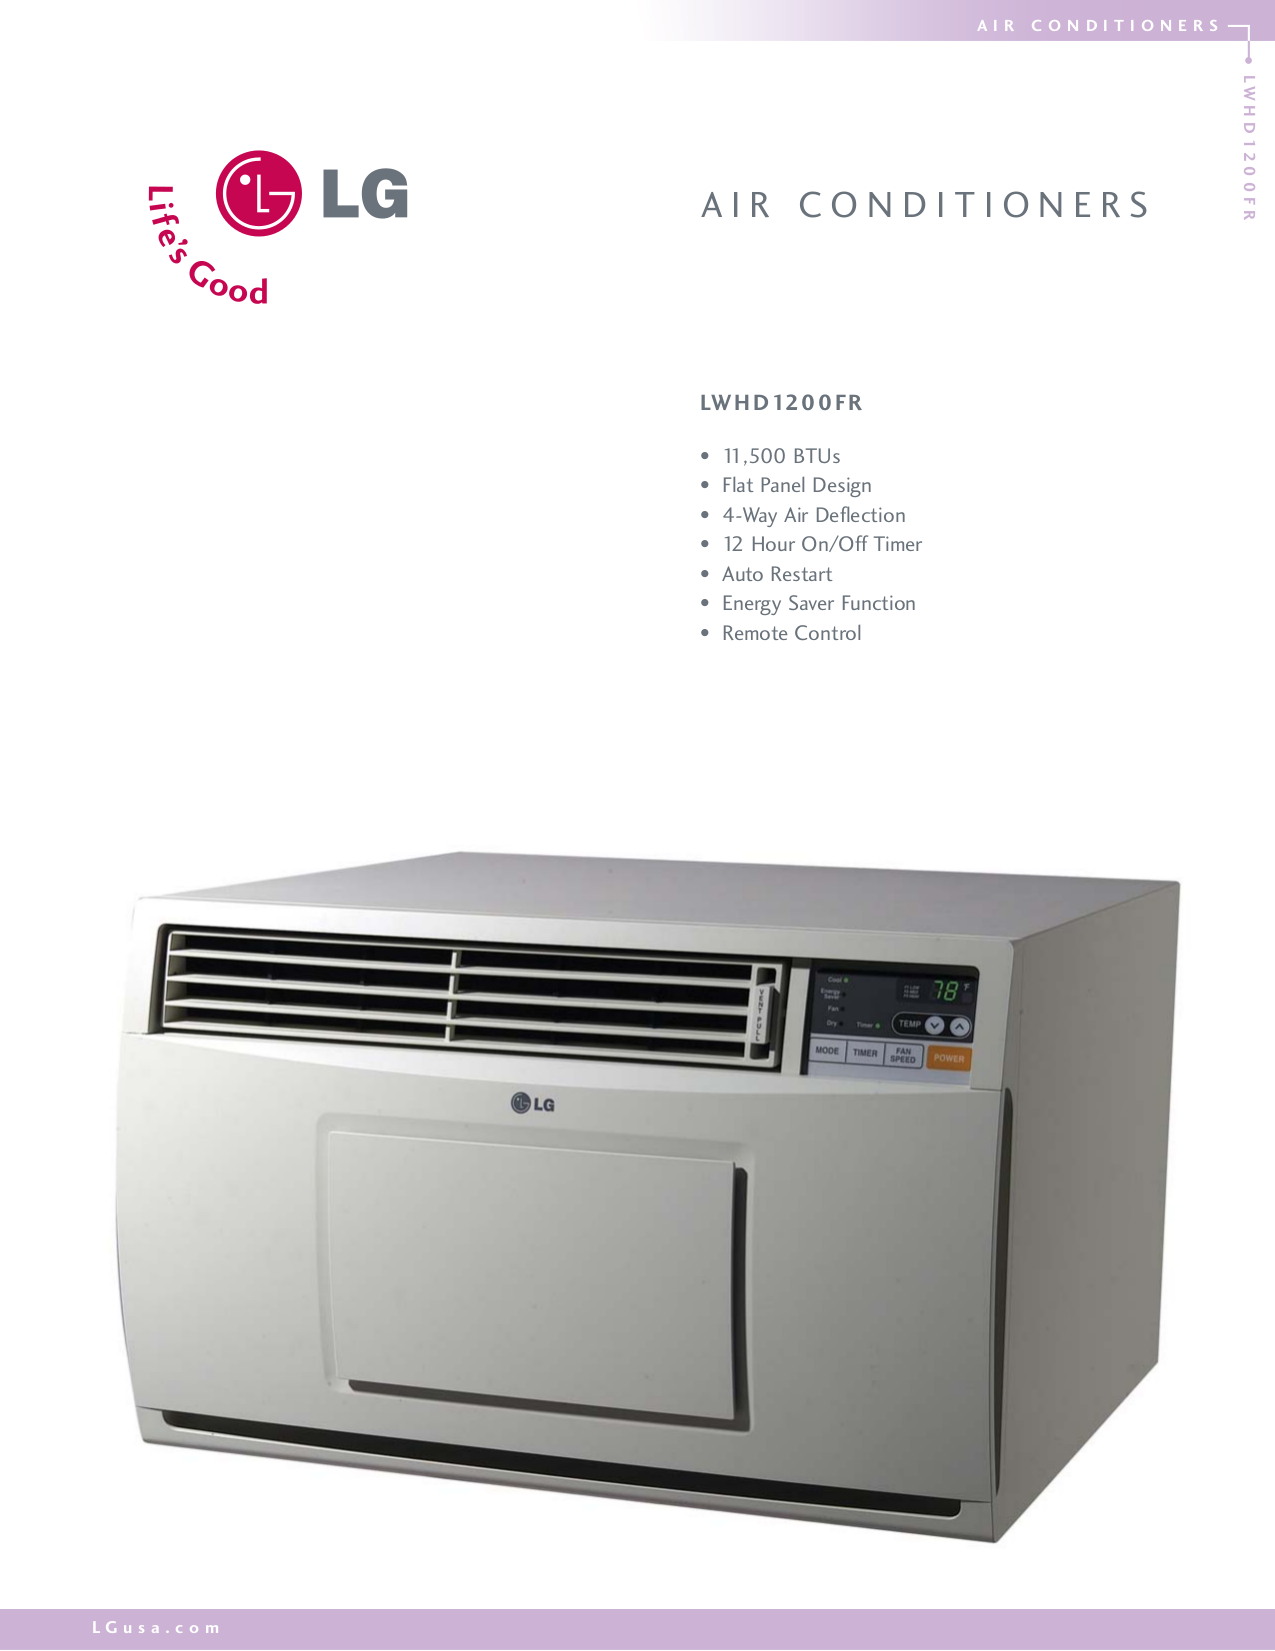 download free pdf for lg lwhd1200fr air conditioner manual. Black Bedroom Furniture Sets. Home Design Ideas